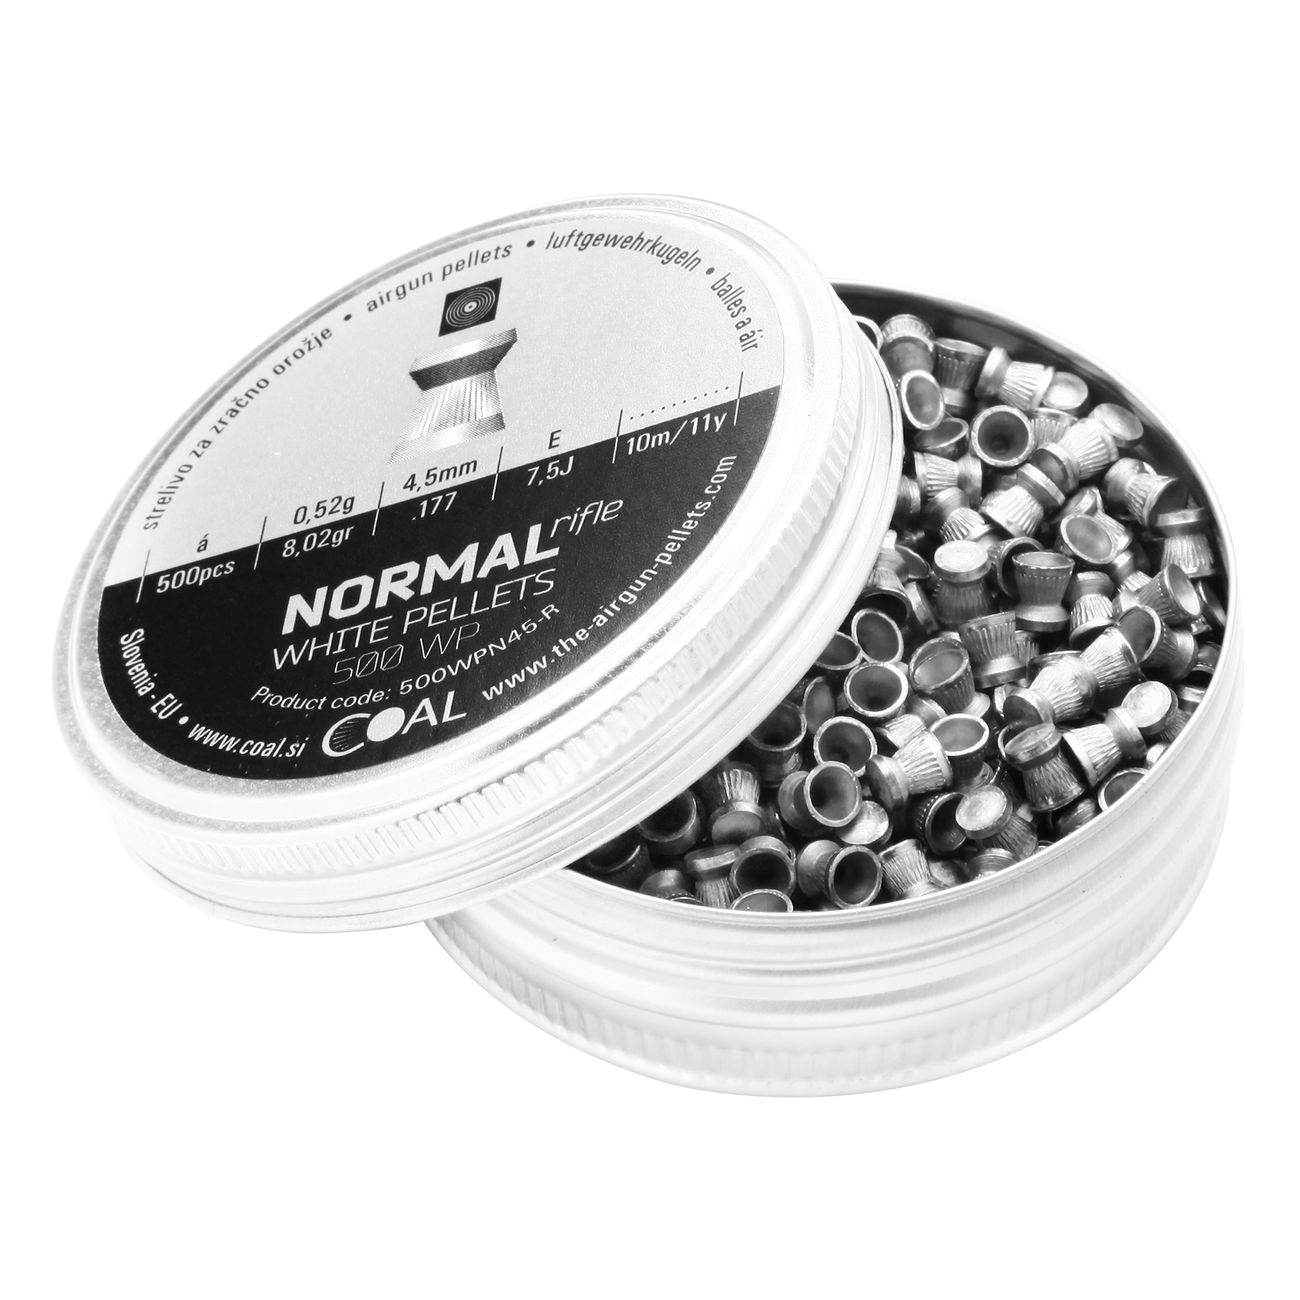 Coal Flachkopf-Diabolo Normal White Pellets Rifle Match geriffelter Schaft Kal. 4,51mm 500er Dose 2